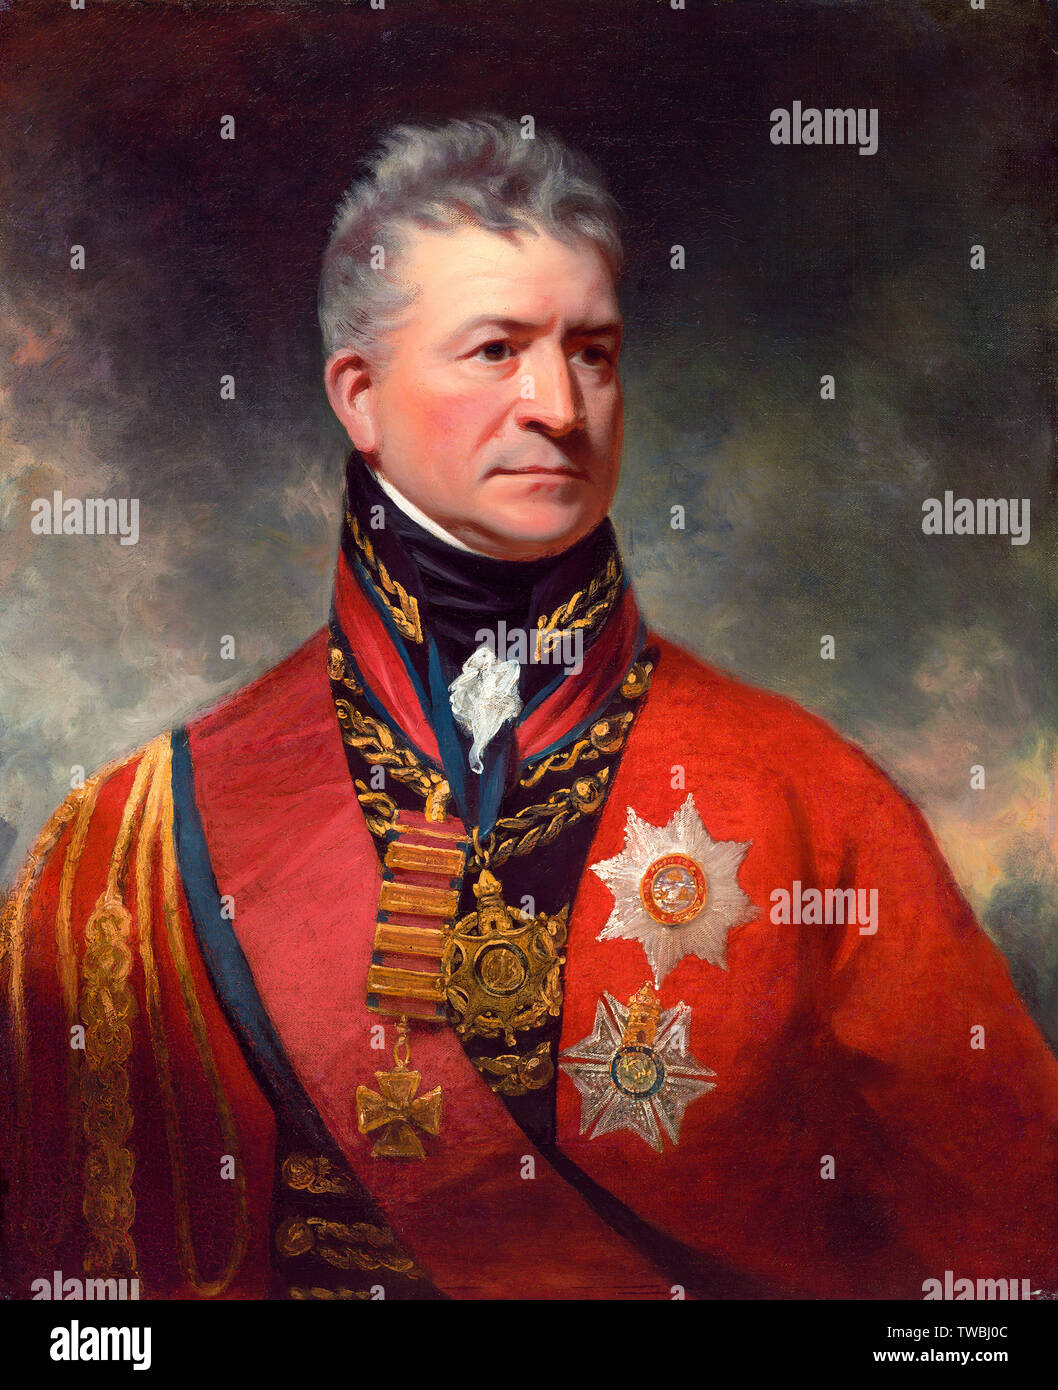 Lieutenant-General Sir Thomas Picton, 1758-1815, portrait painting, circa 1815 - Stock Image